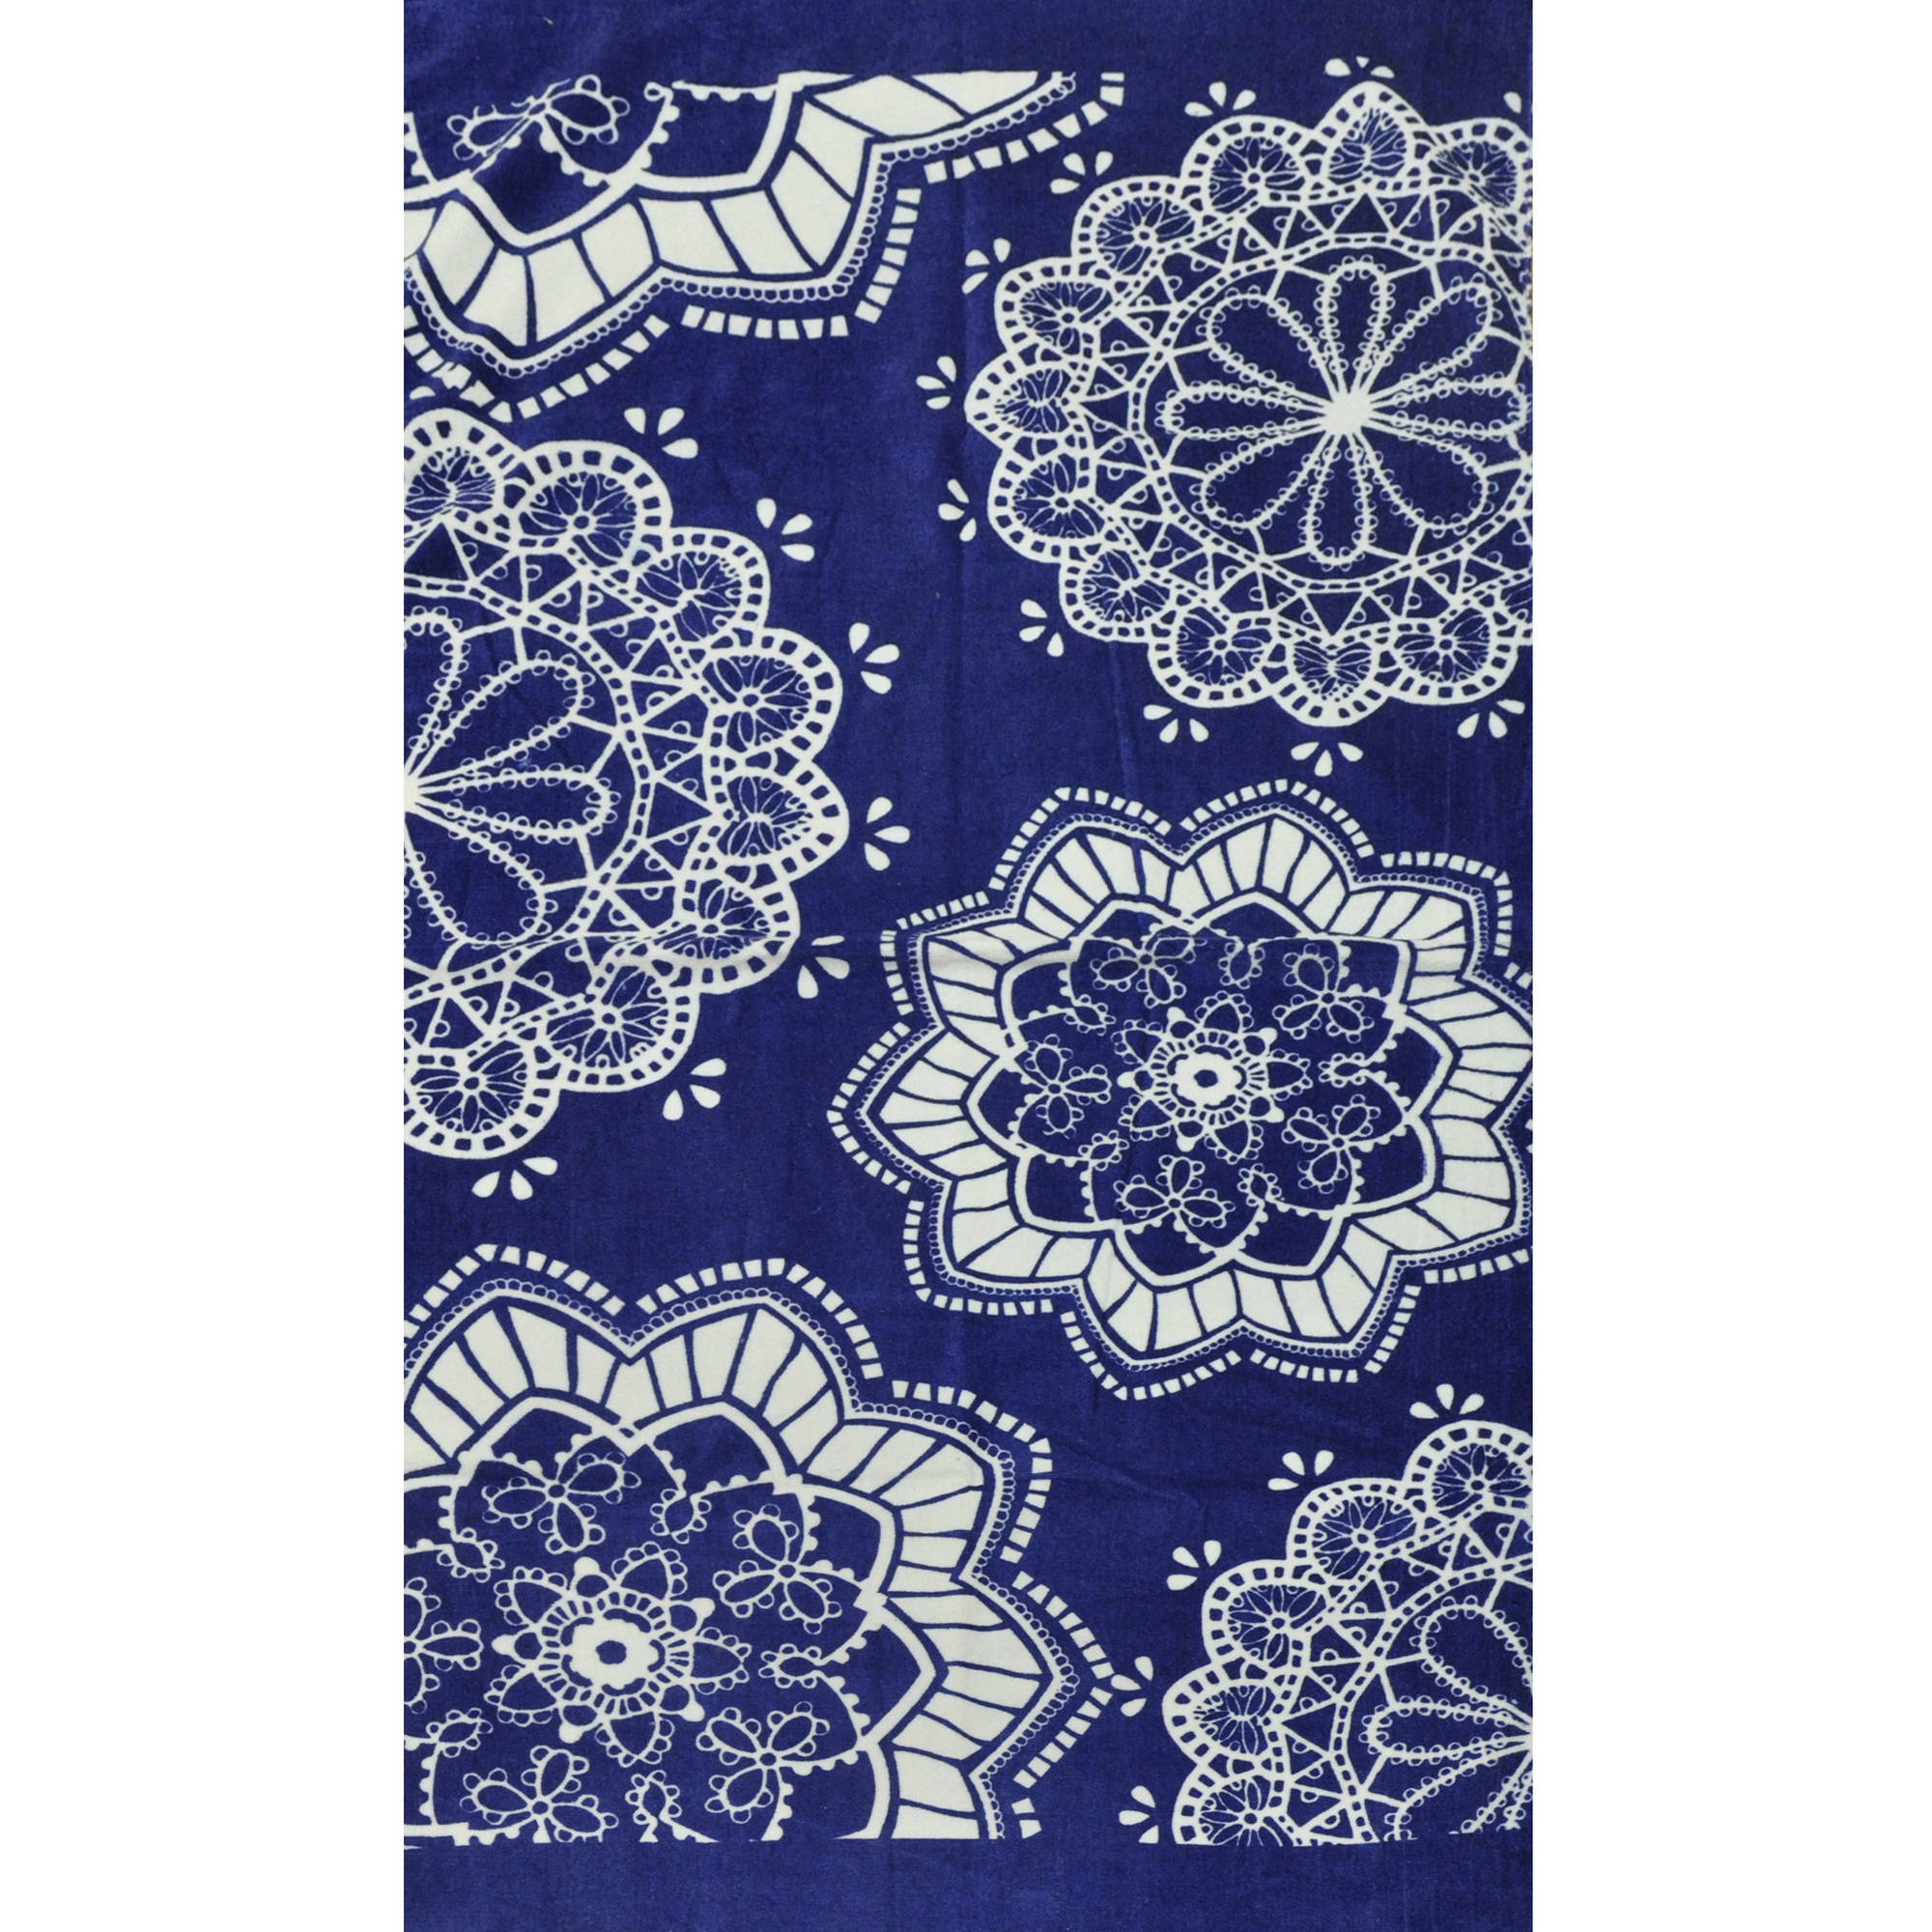 Beach House Indigo Lace Cotton Beach Towel